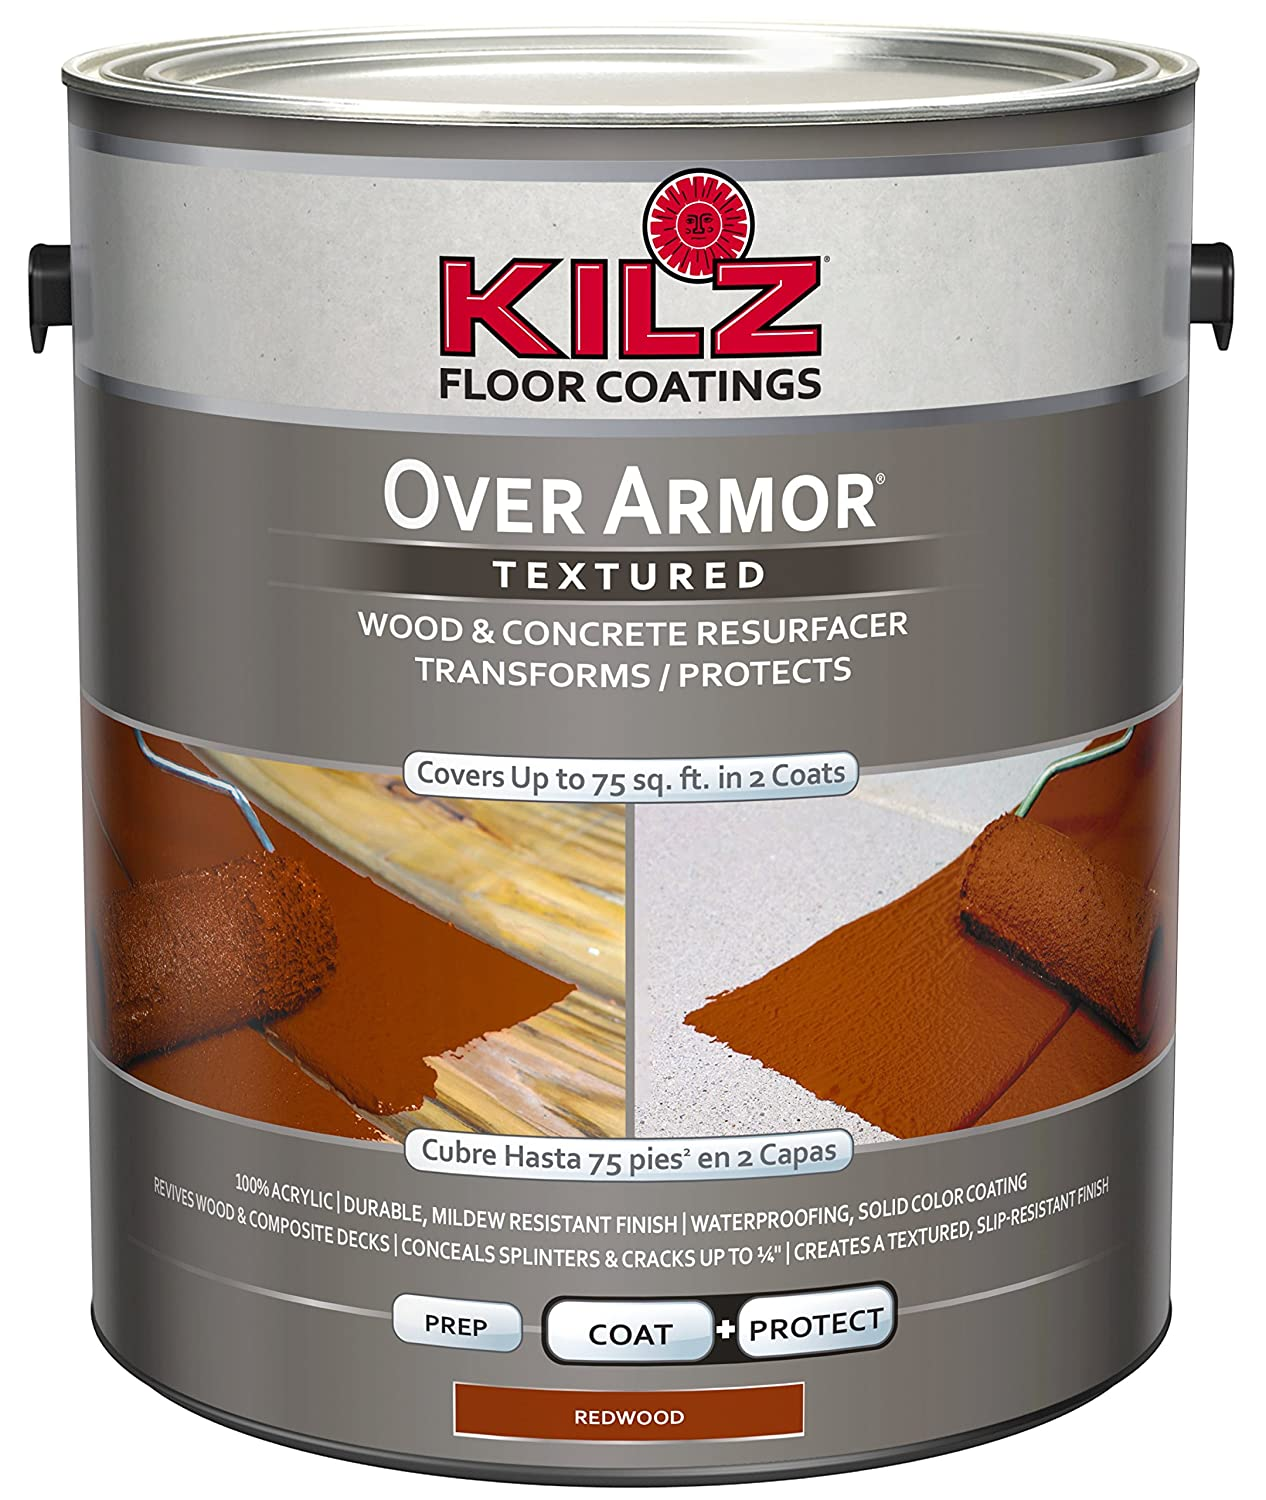 Amazoncom KILZ Over Armor Textured WoodConcrete Coating 1 gallon